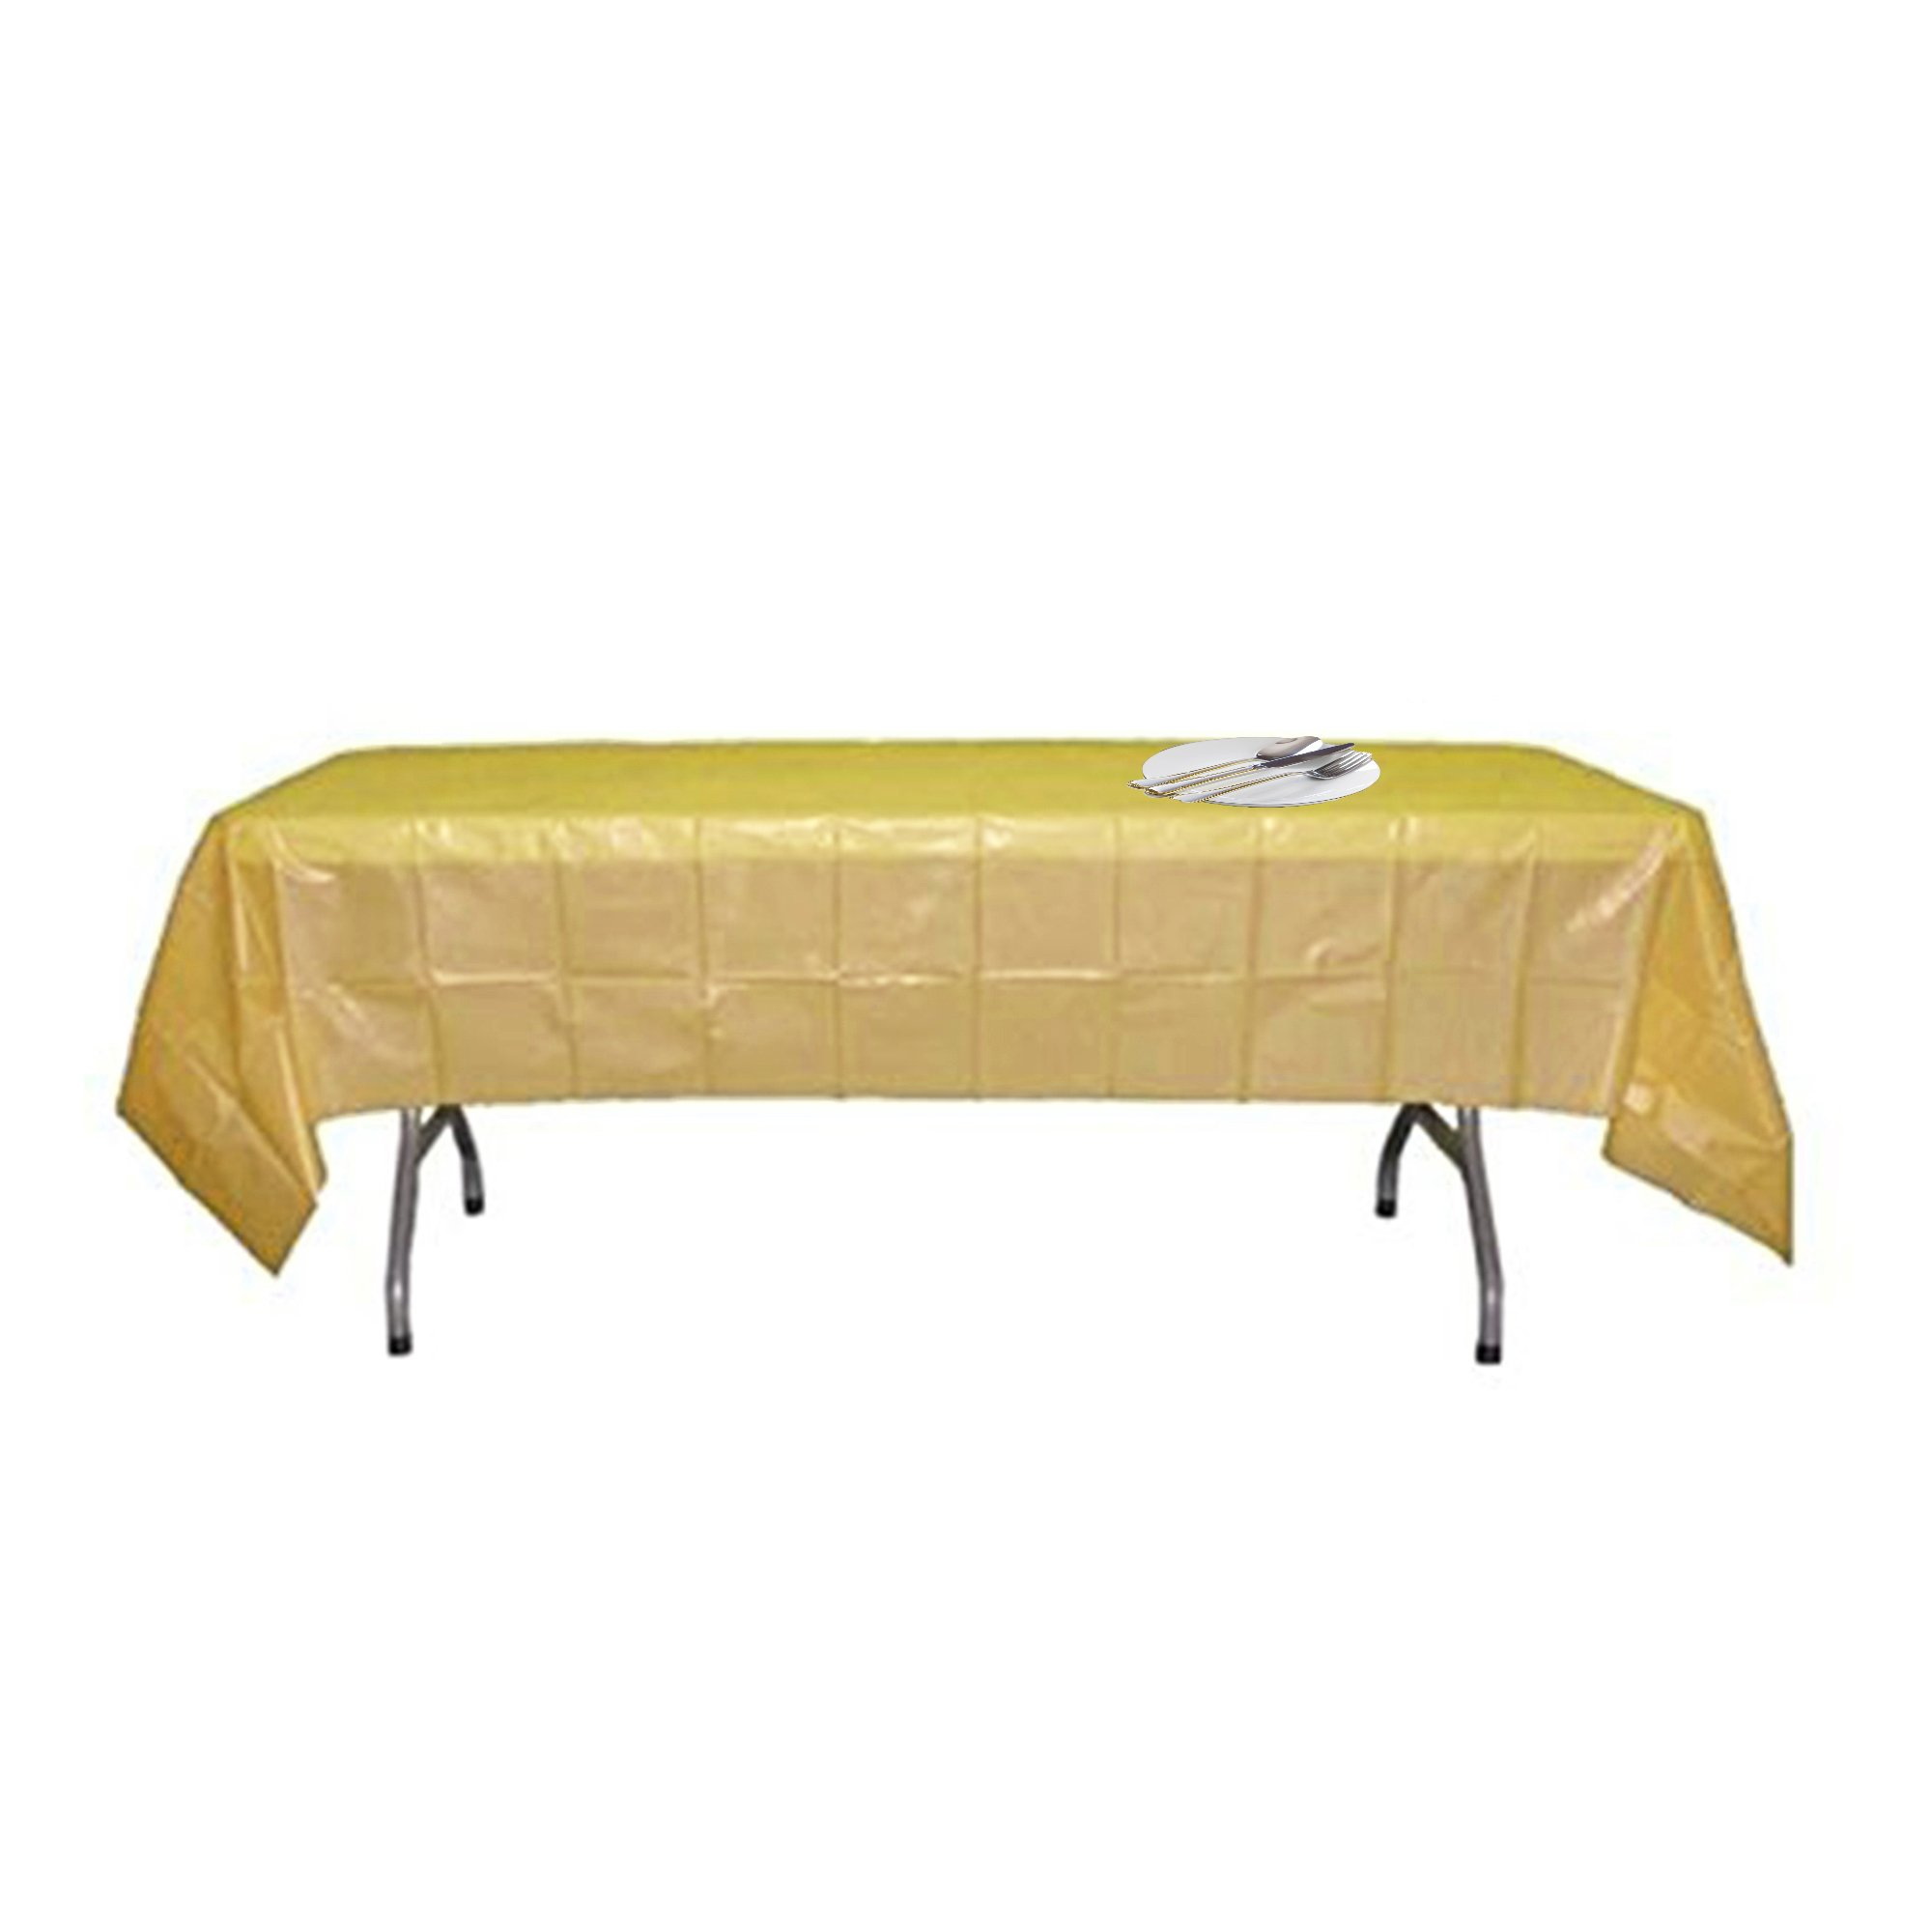 5 Pack Disposable Plastic Tablecloths Table Cloth Covers for Creative Party, 54 x 108 inches each(gold)